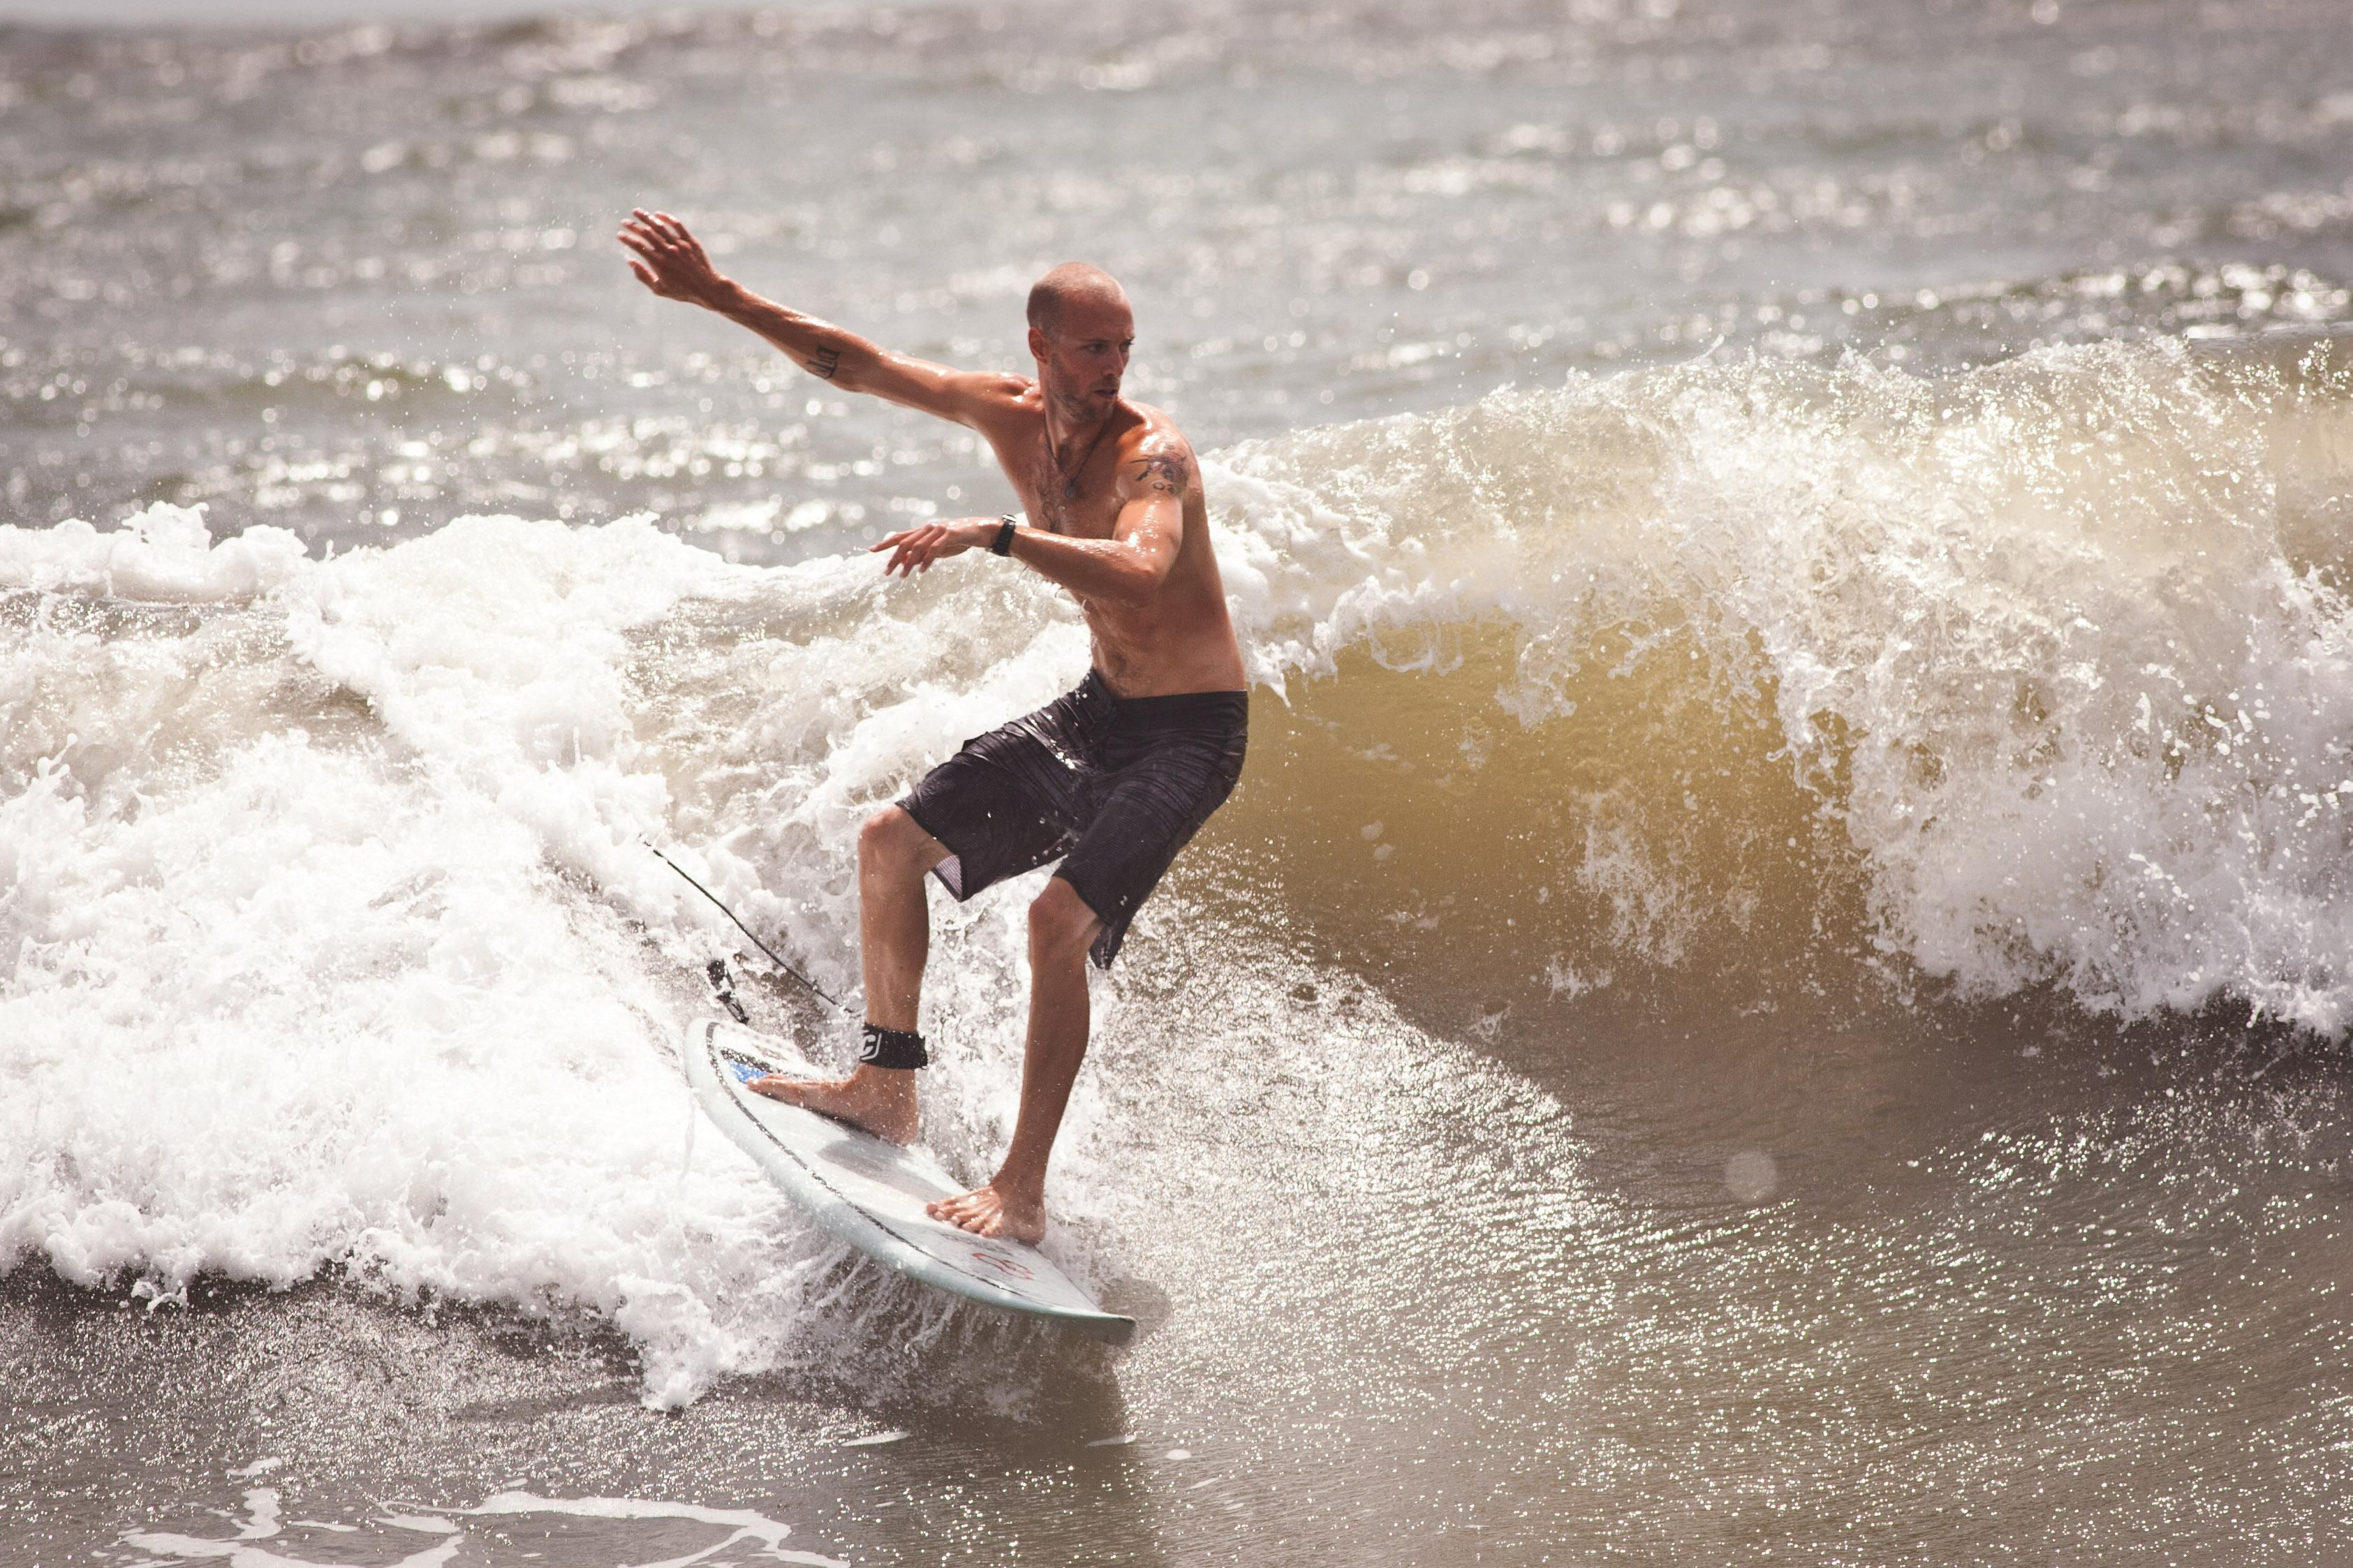 Different Types Of Surfing Waves And Breaks